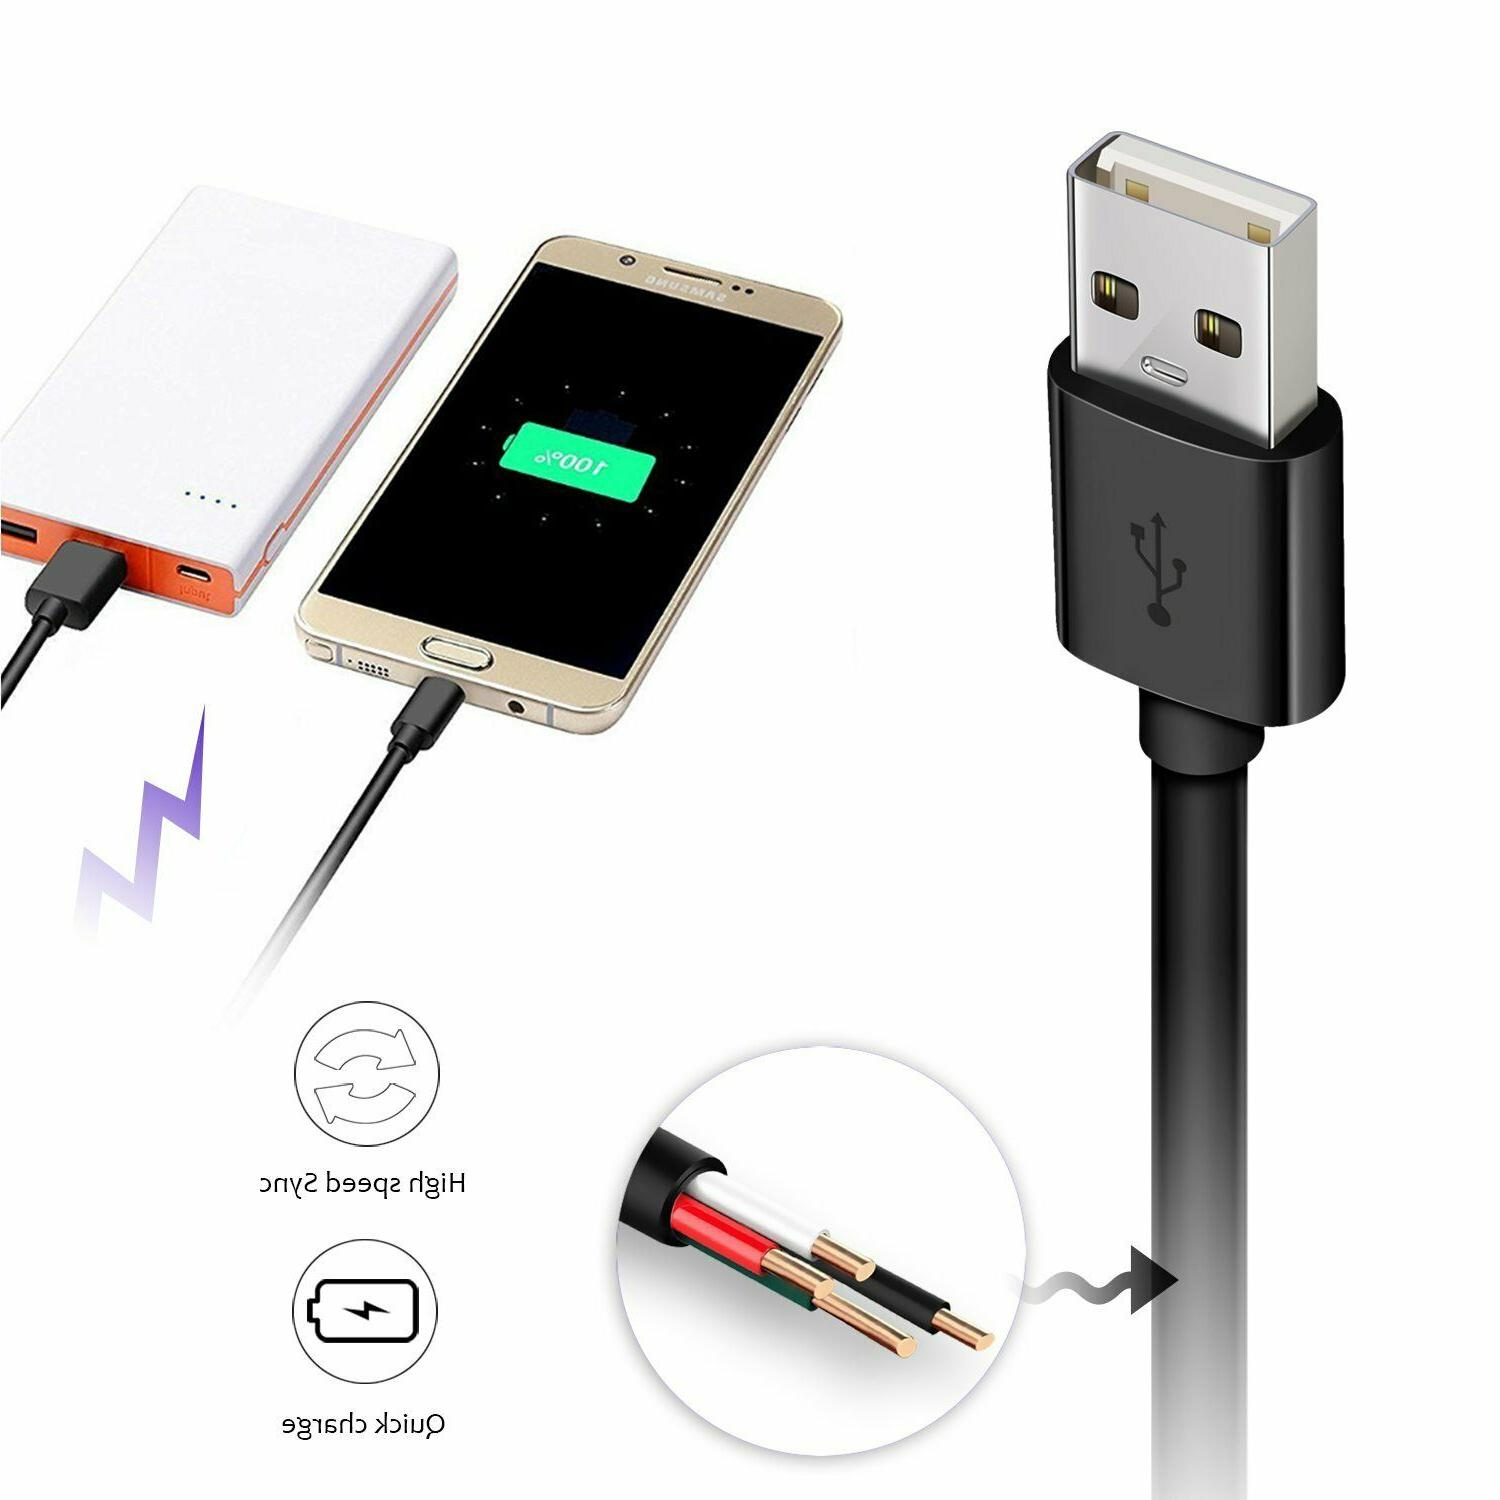 USB Charging Pack Android Phone Fast Cord for Samsung